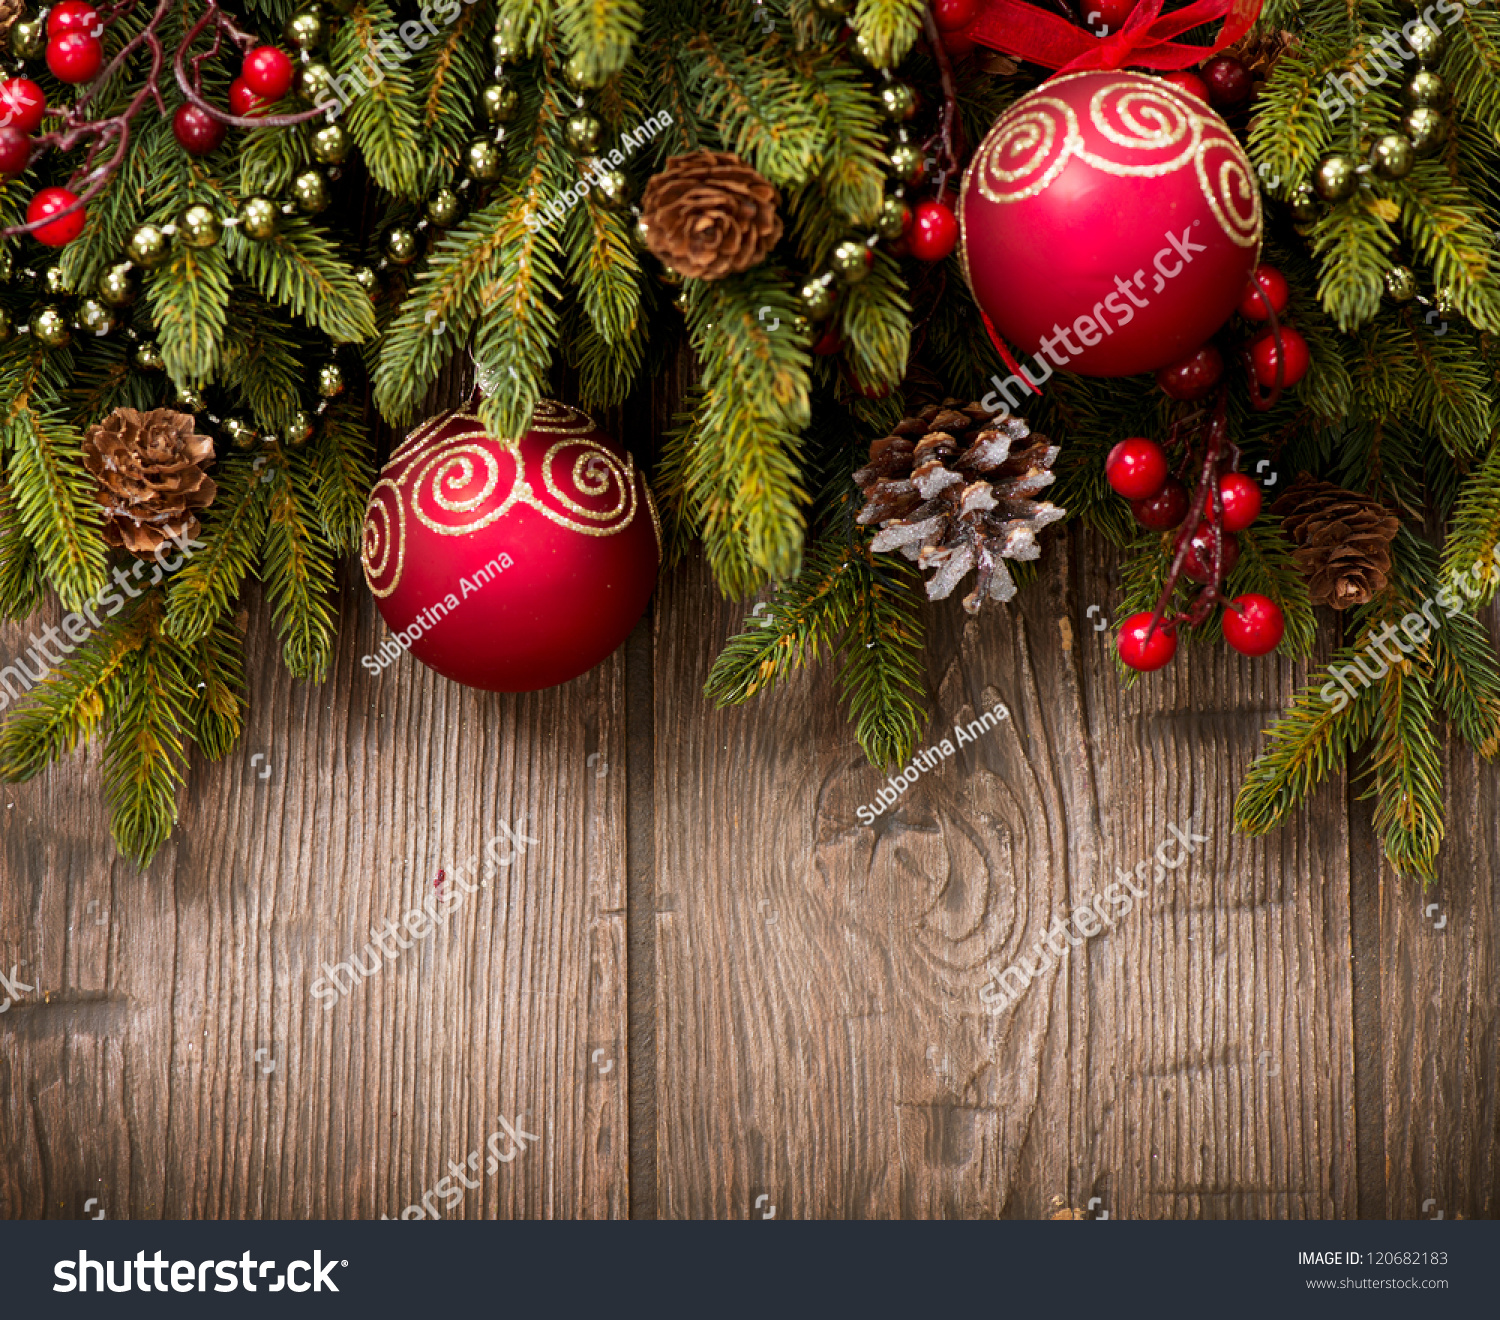 Christmas Decorations Background Pictures: Christmas Decoration Over Wooden Background. Decorations